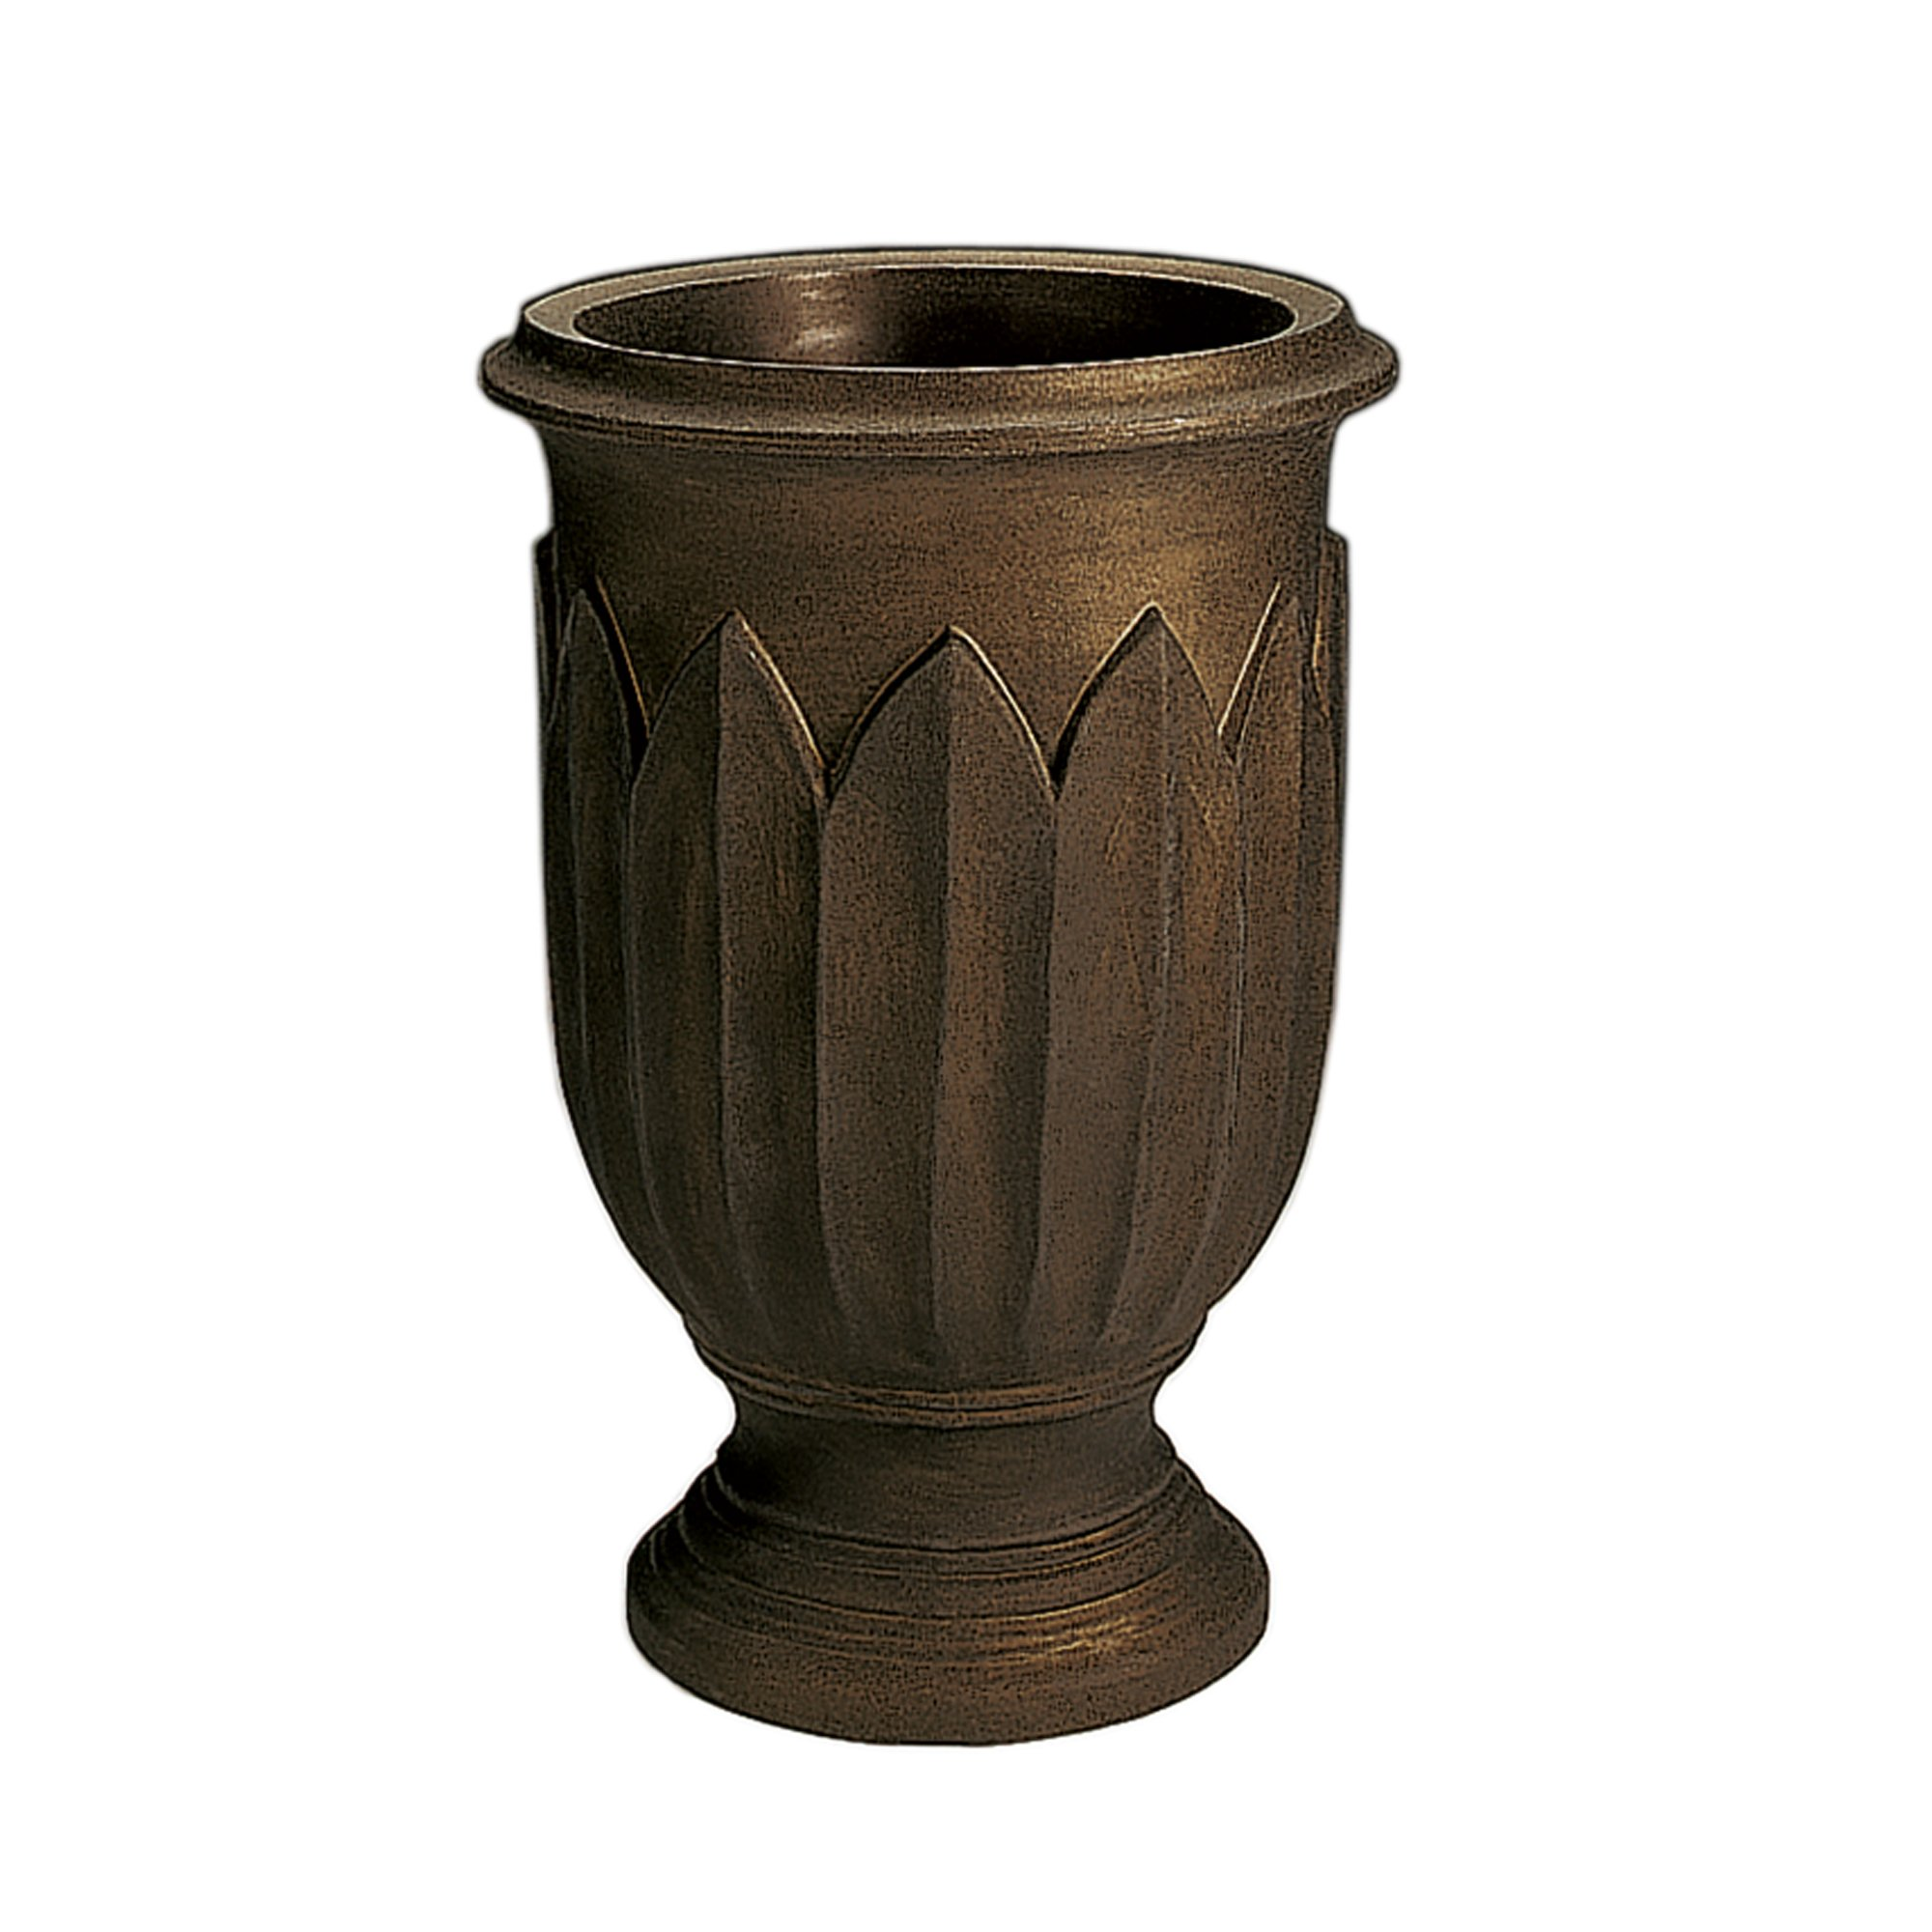 Crescent Garden Rotational Molded Freda Urn, 26'', Old Bronze by Crescent Garden